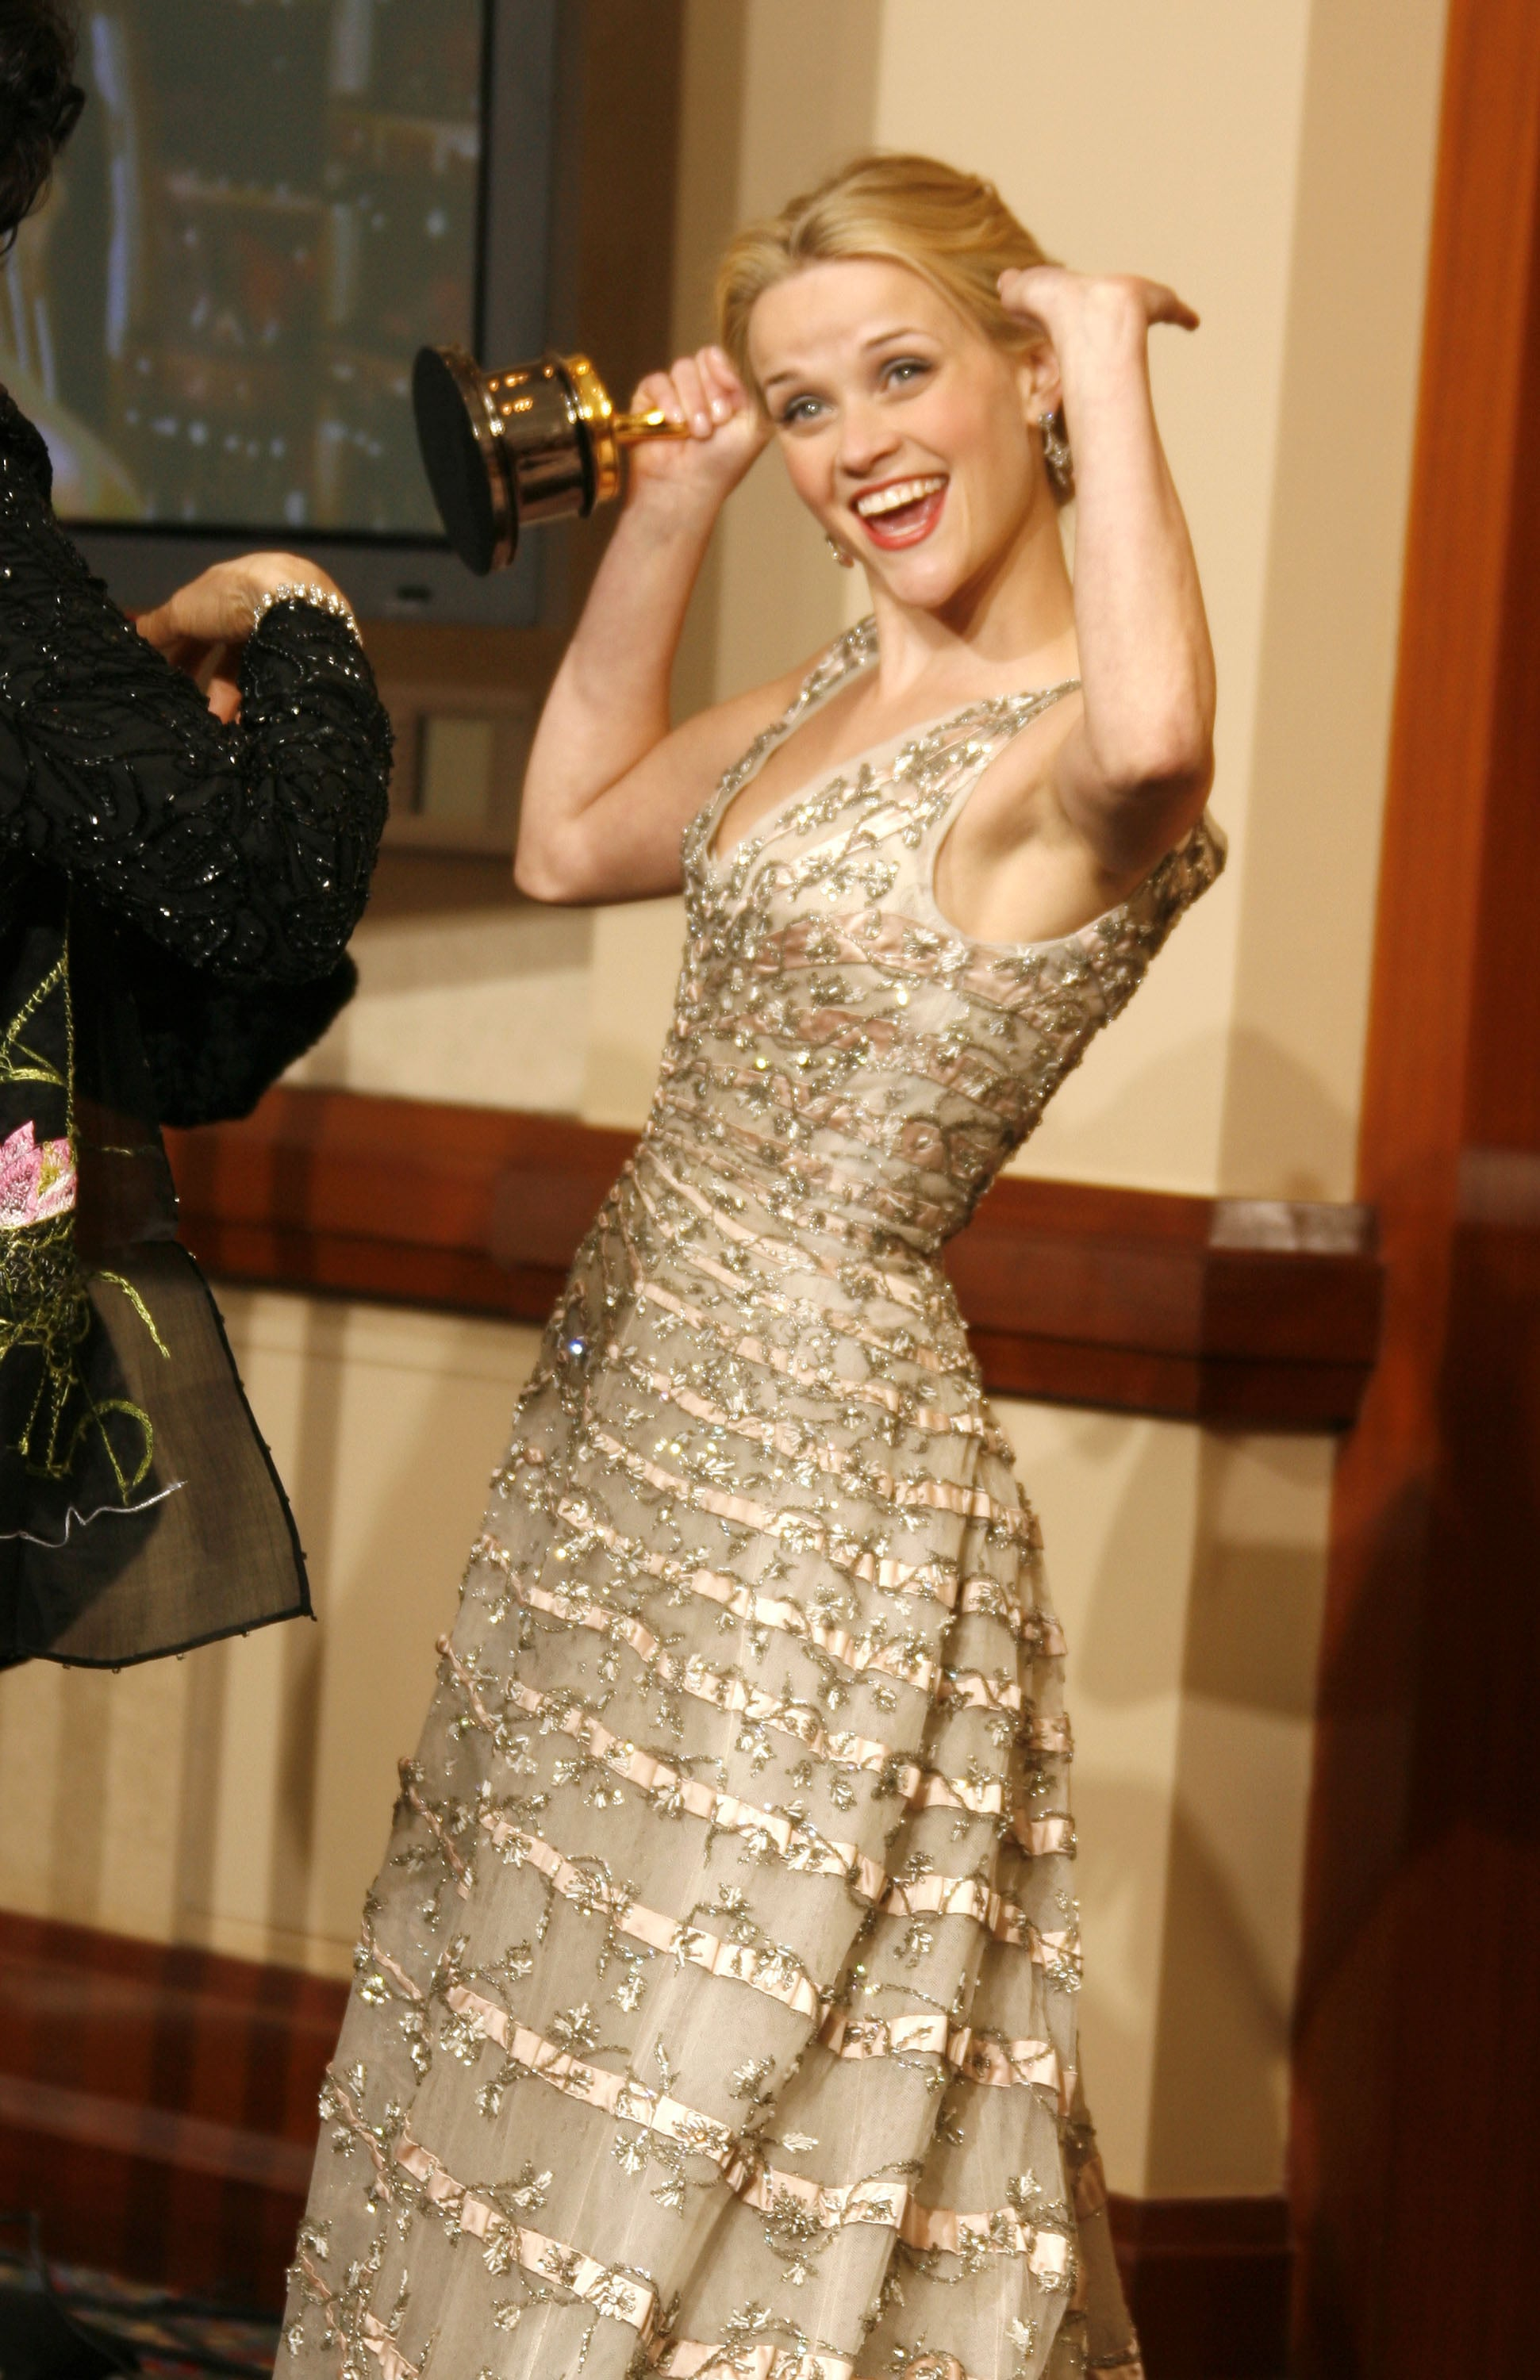 Reese Witherspoon 2006 All the Fun Vintage PicturesReese Witherspoon Oscar 2006